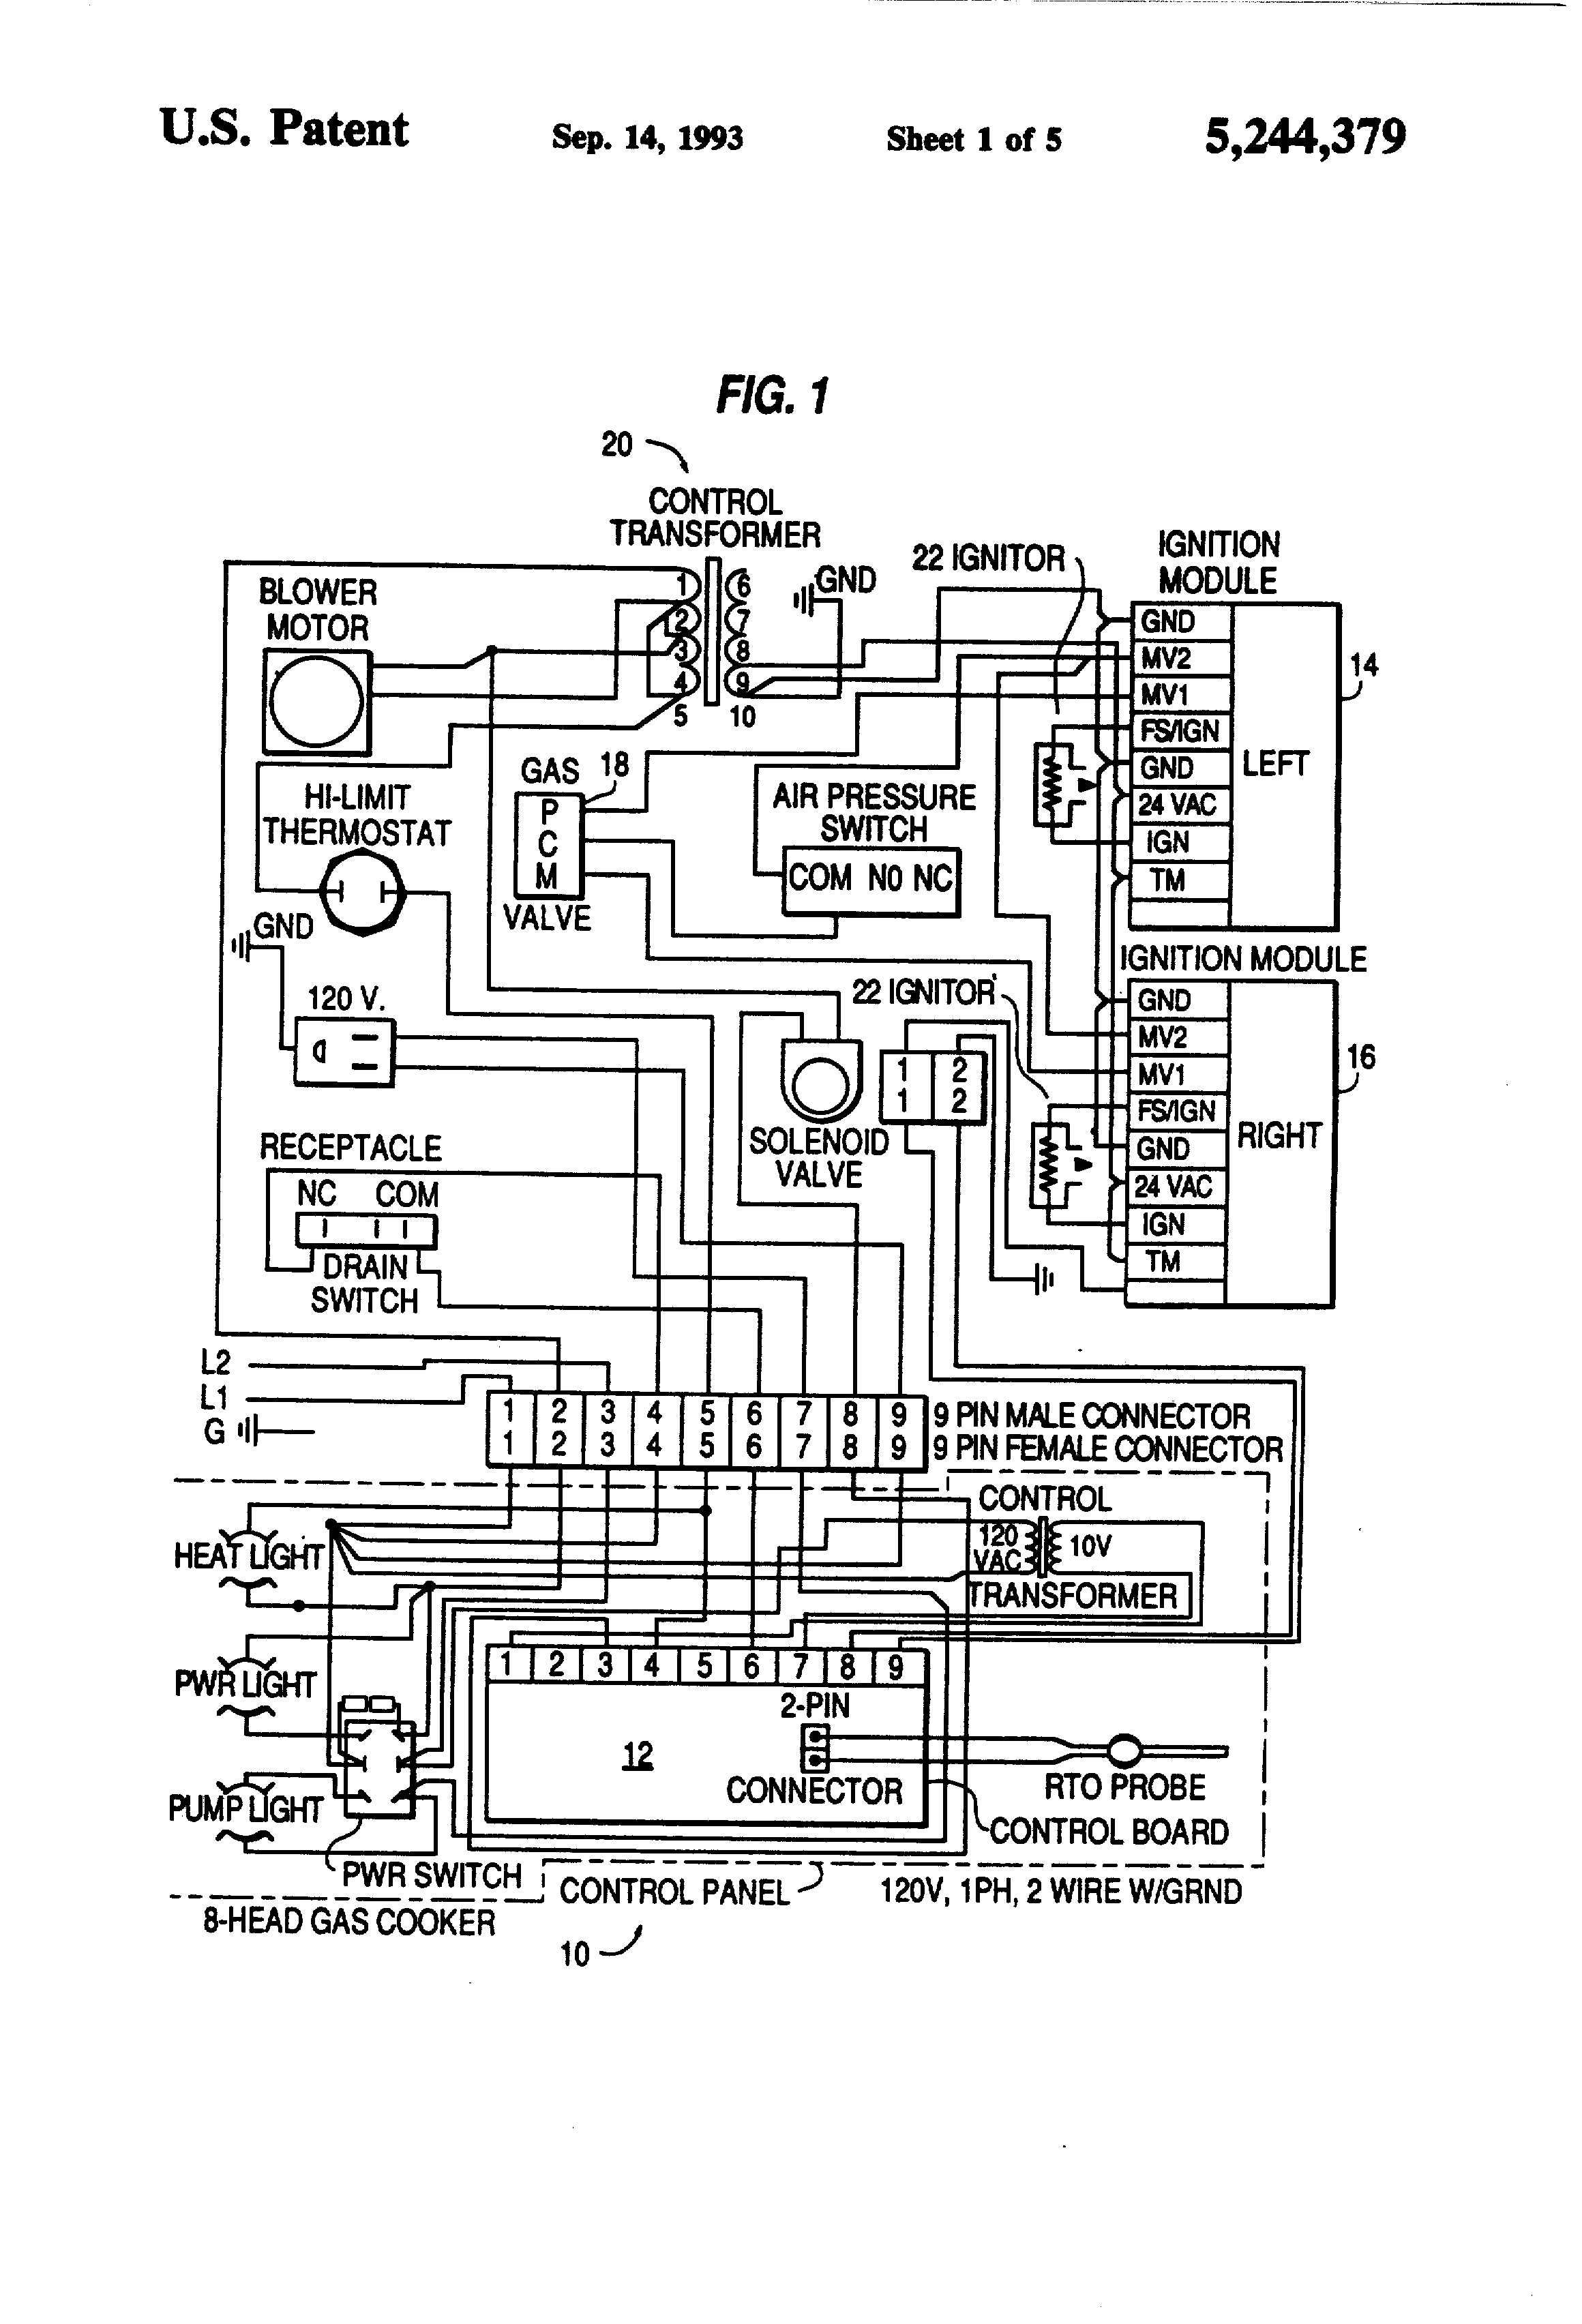 fenwal automatic ignition module wiring diagram wiring diagramfenwal ignition module wiring diagram hvac simple wiring diagrams ford tfi ignition wiring diagram fenwal automatic ignition module wiring diagram